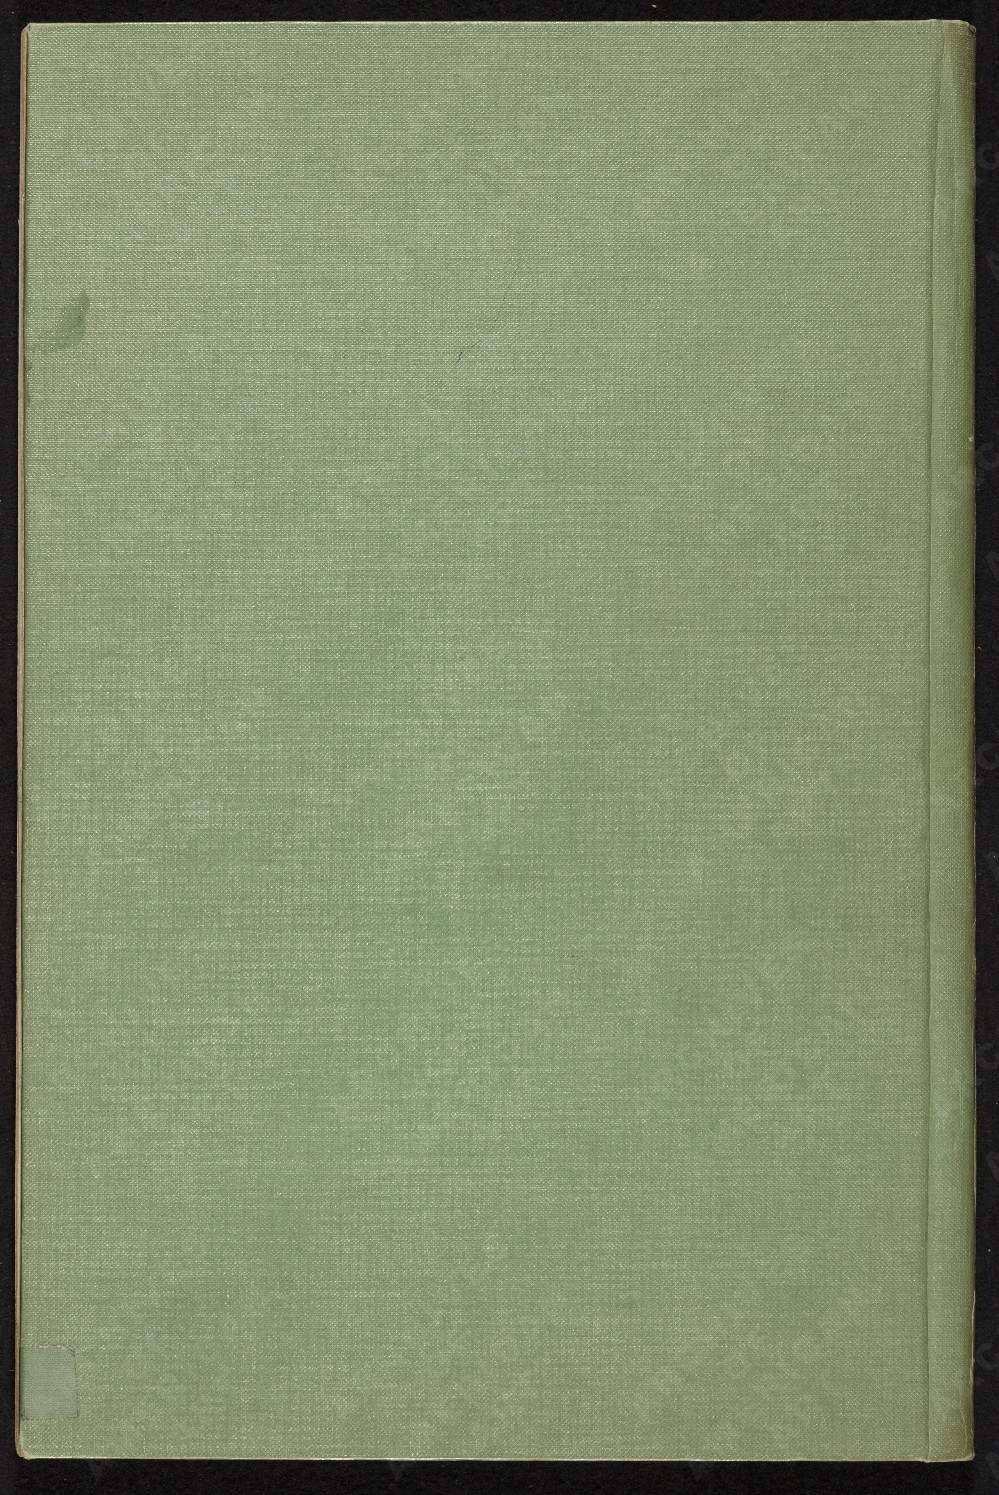 Image for cover back 16